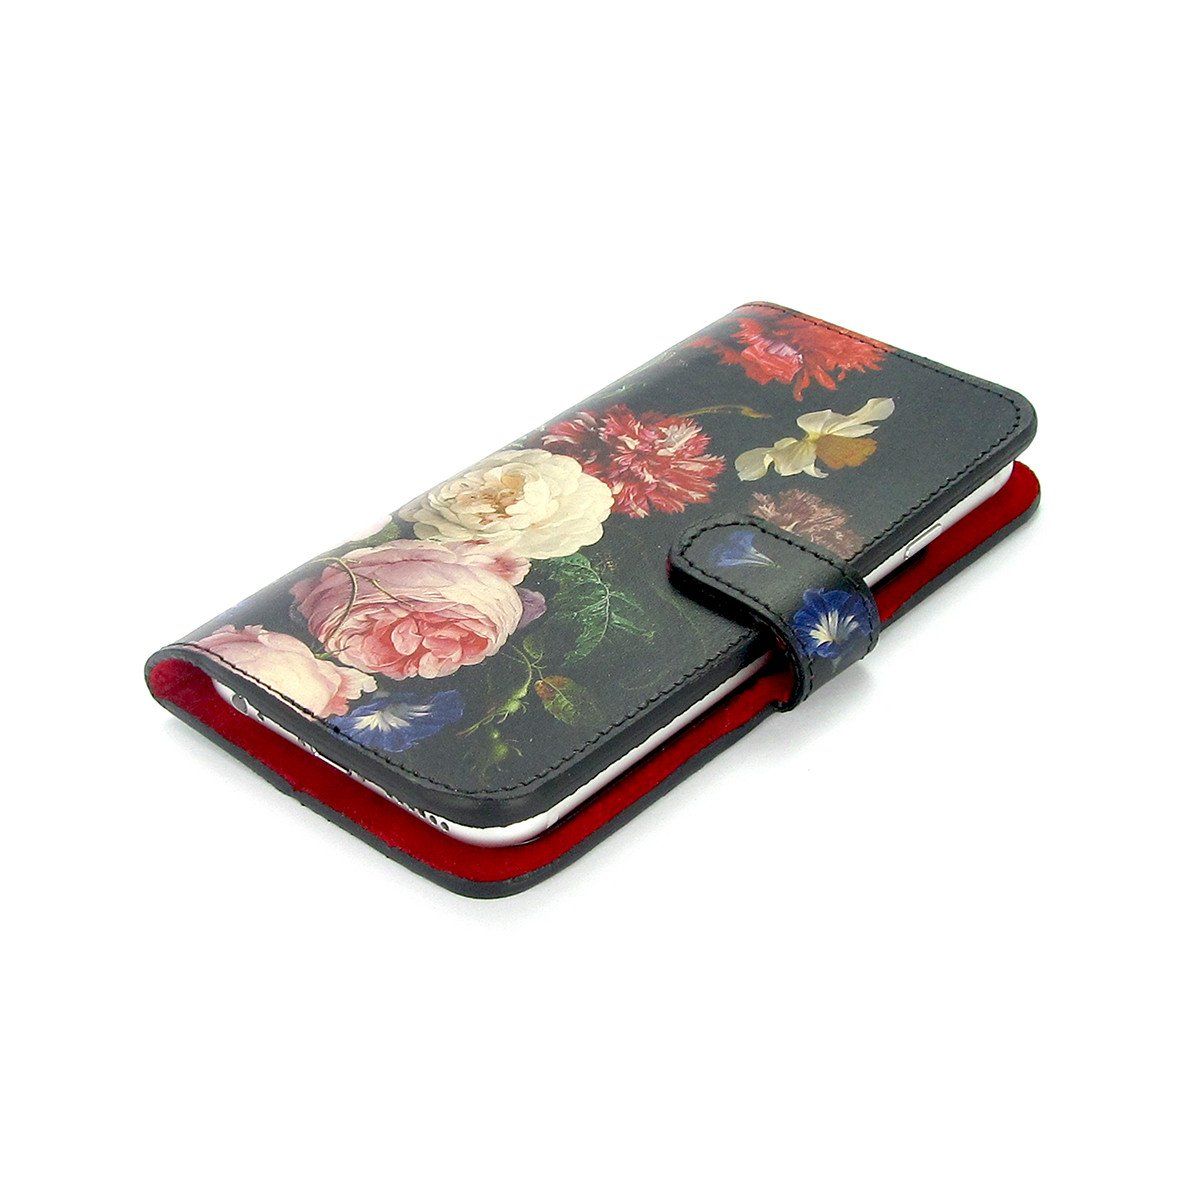 High quality 100% leather phone case for iPhone XR. iPhone XS Max leather case with floral print - A Dutch Spring - Tovi Sorga leather goods